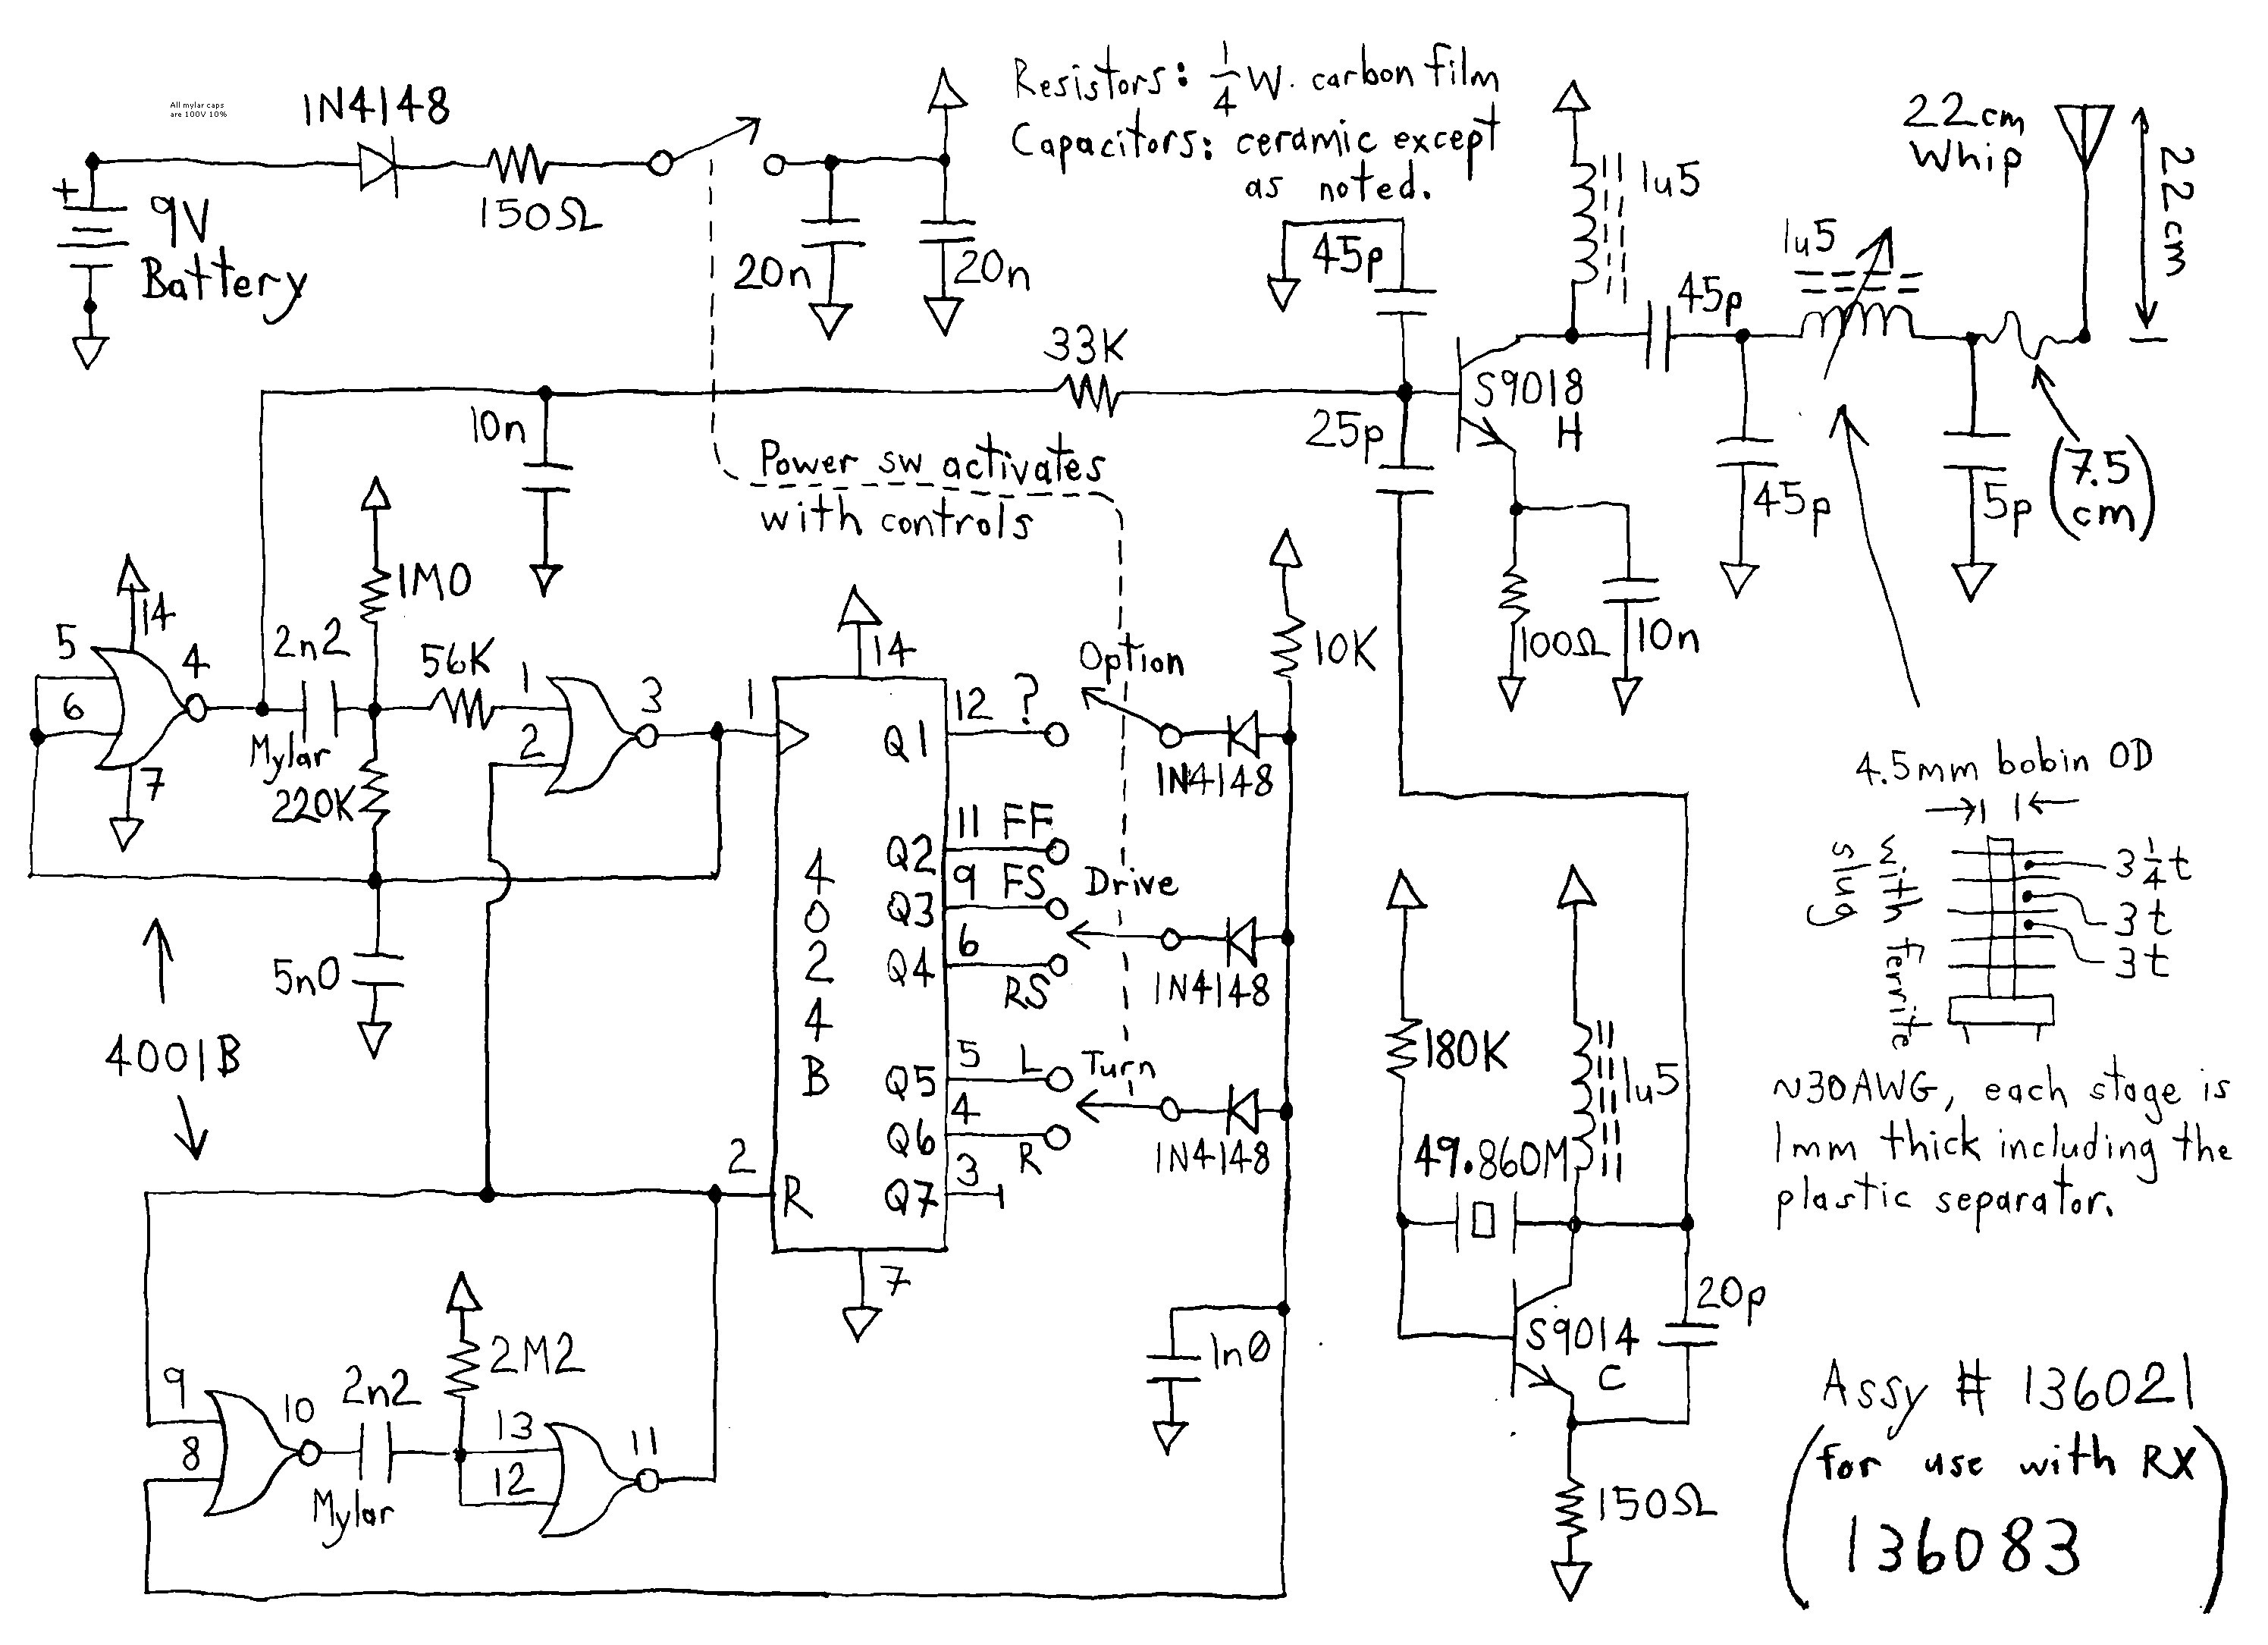 Toy Car Circuit Diagram Wireless Remote Control Car Circuit Diagram Wireless toy Car Circuit Of Toy Car Circuit Diagram